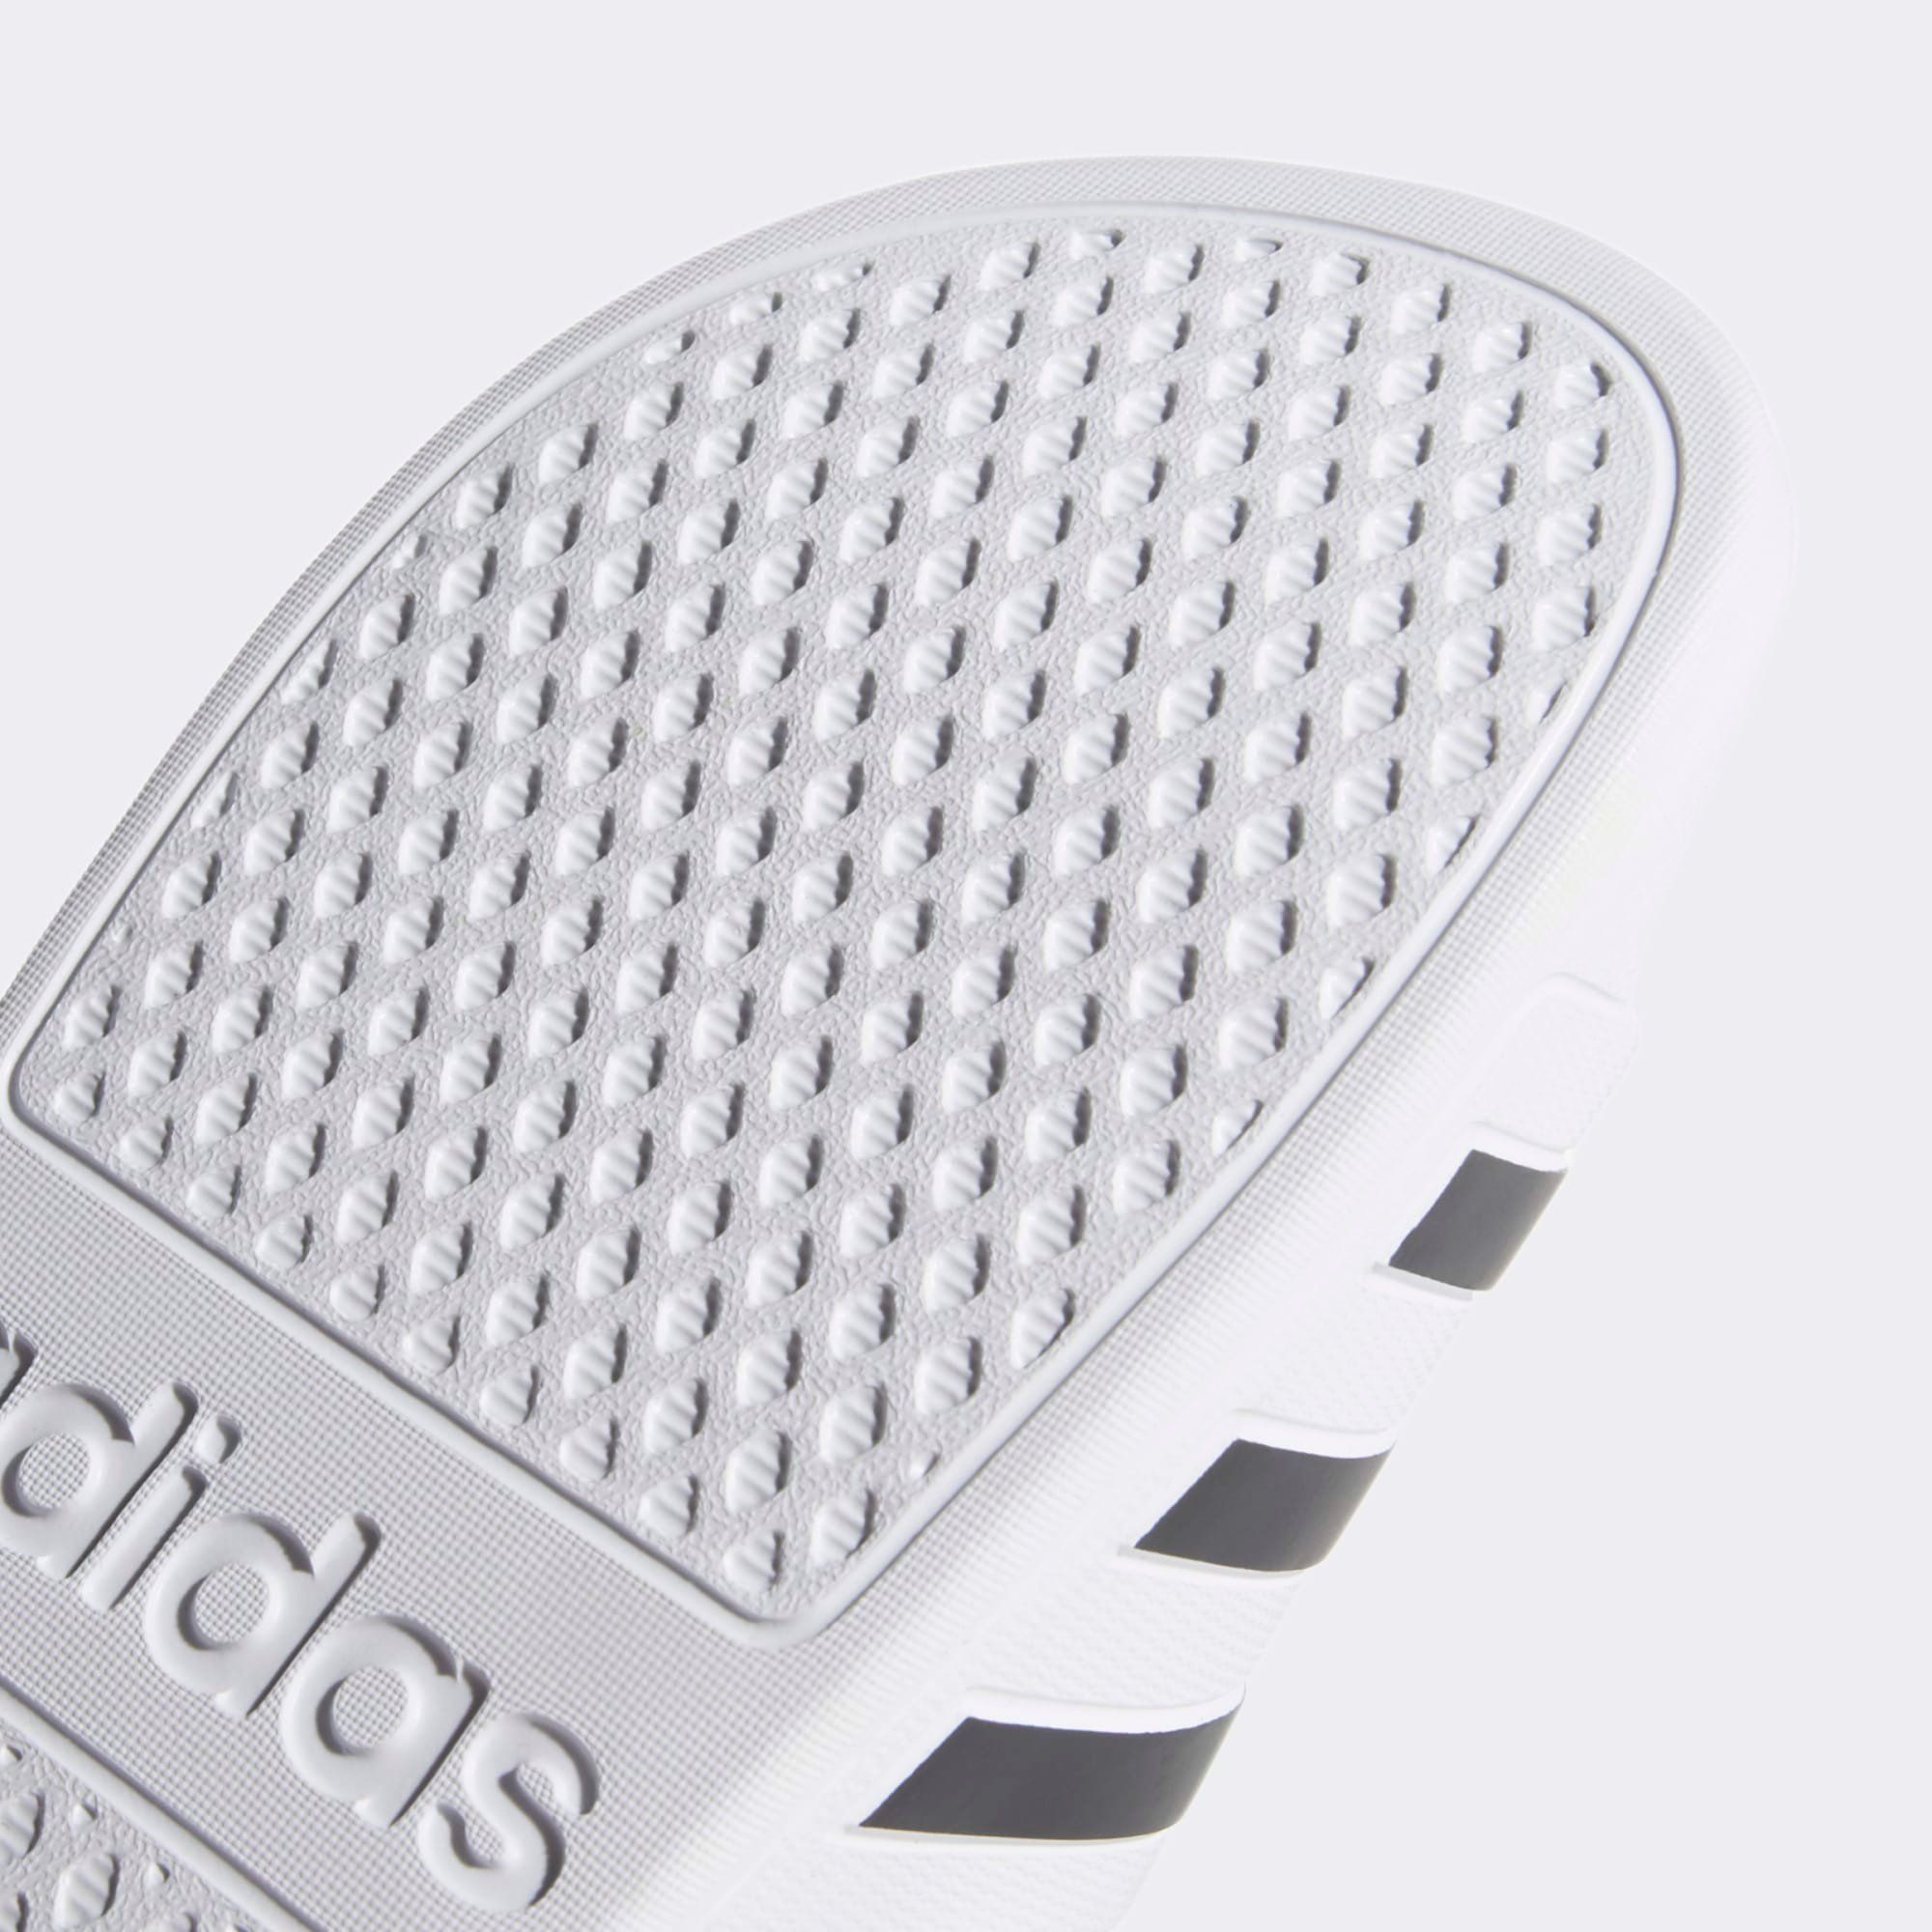 adidas Adilette Aqua - Cloud White